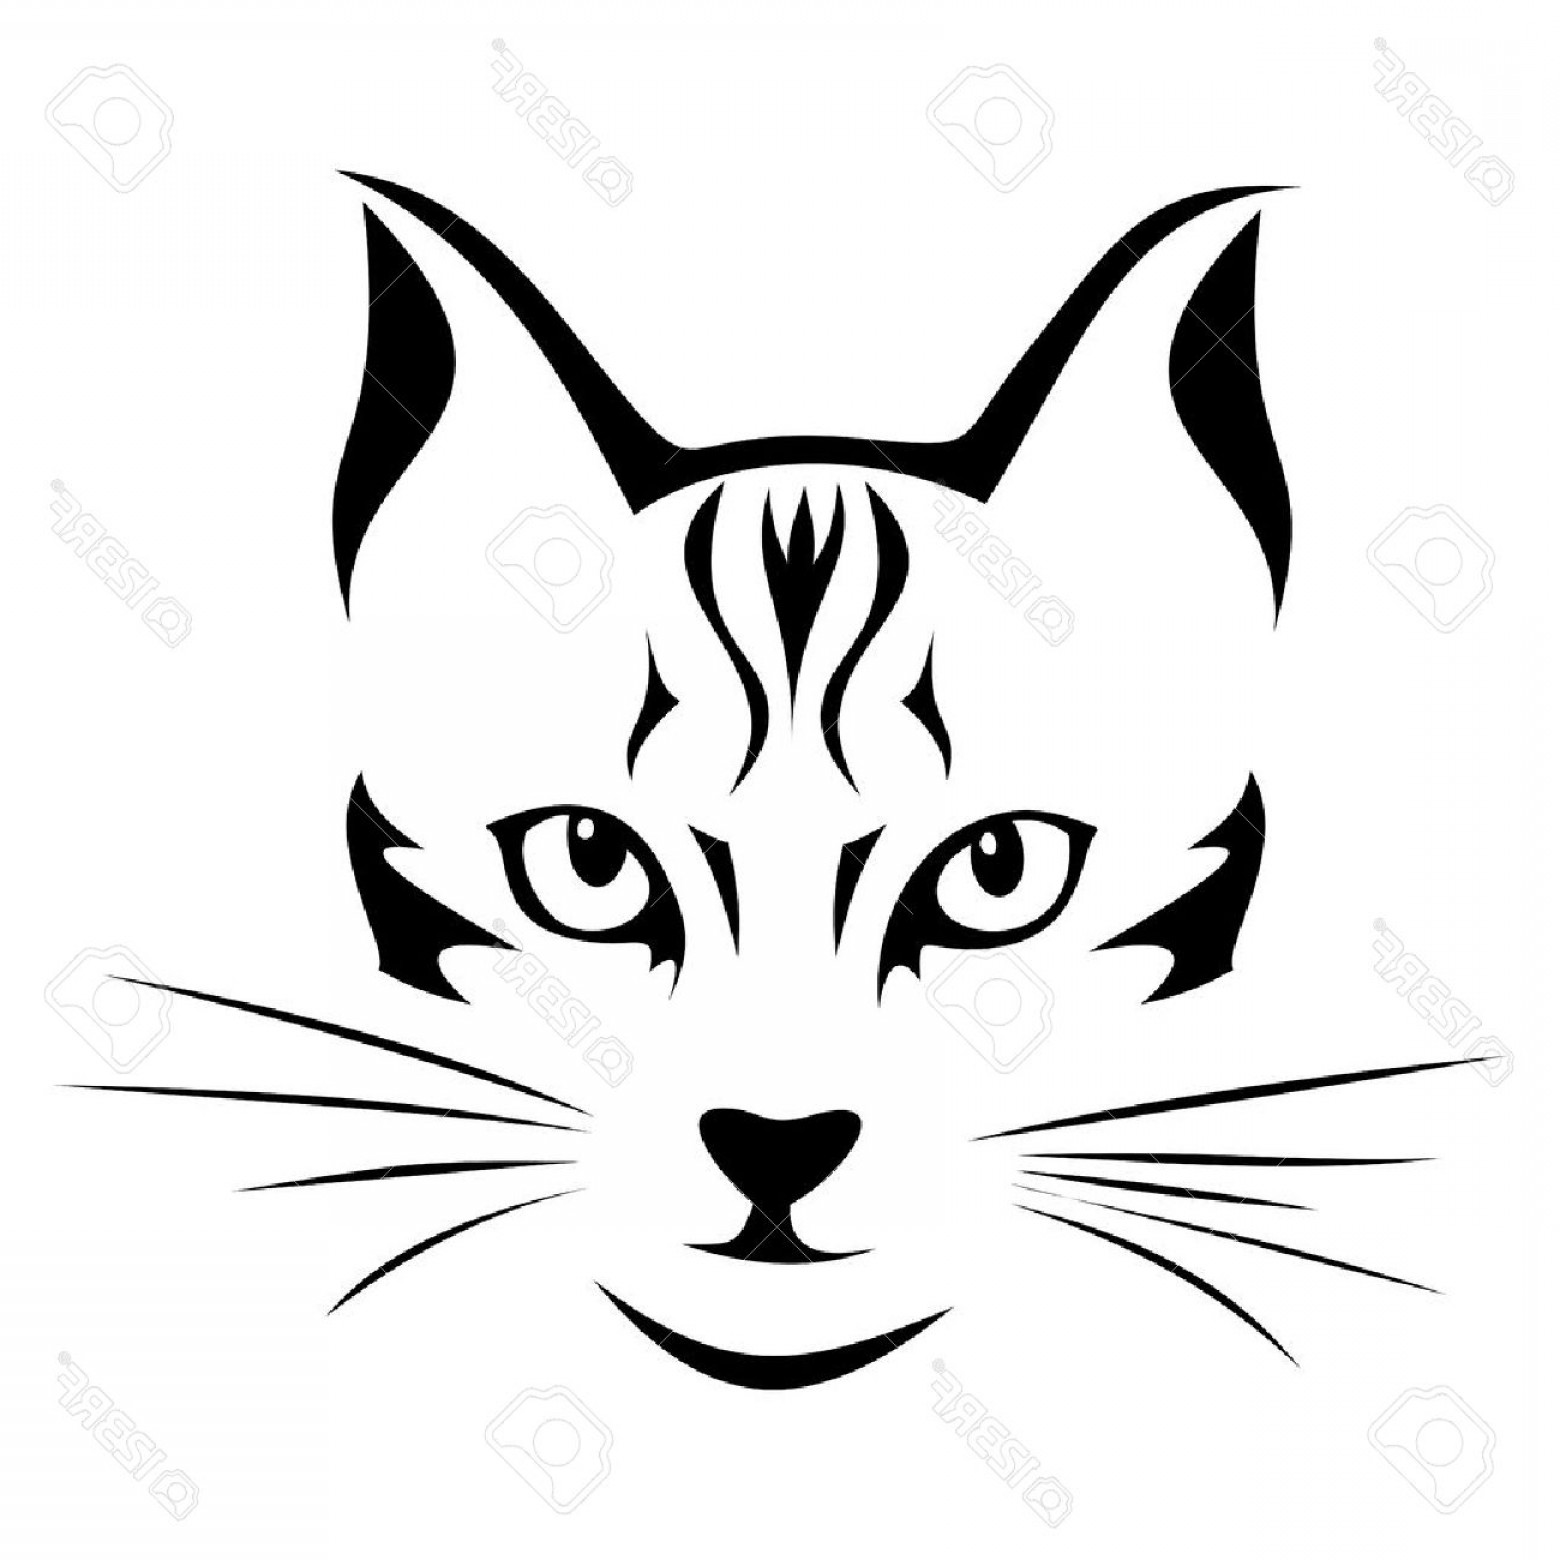 Malee Cat Head Silhouette Vector: Photoblack Silhouette Of Cat Vector Illustration